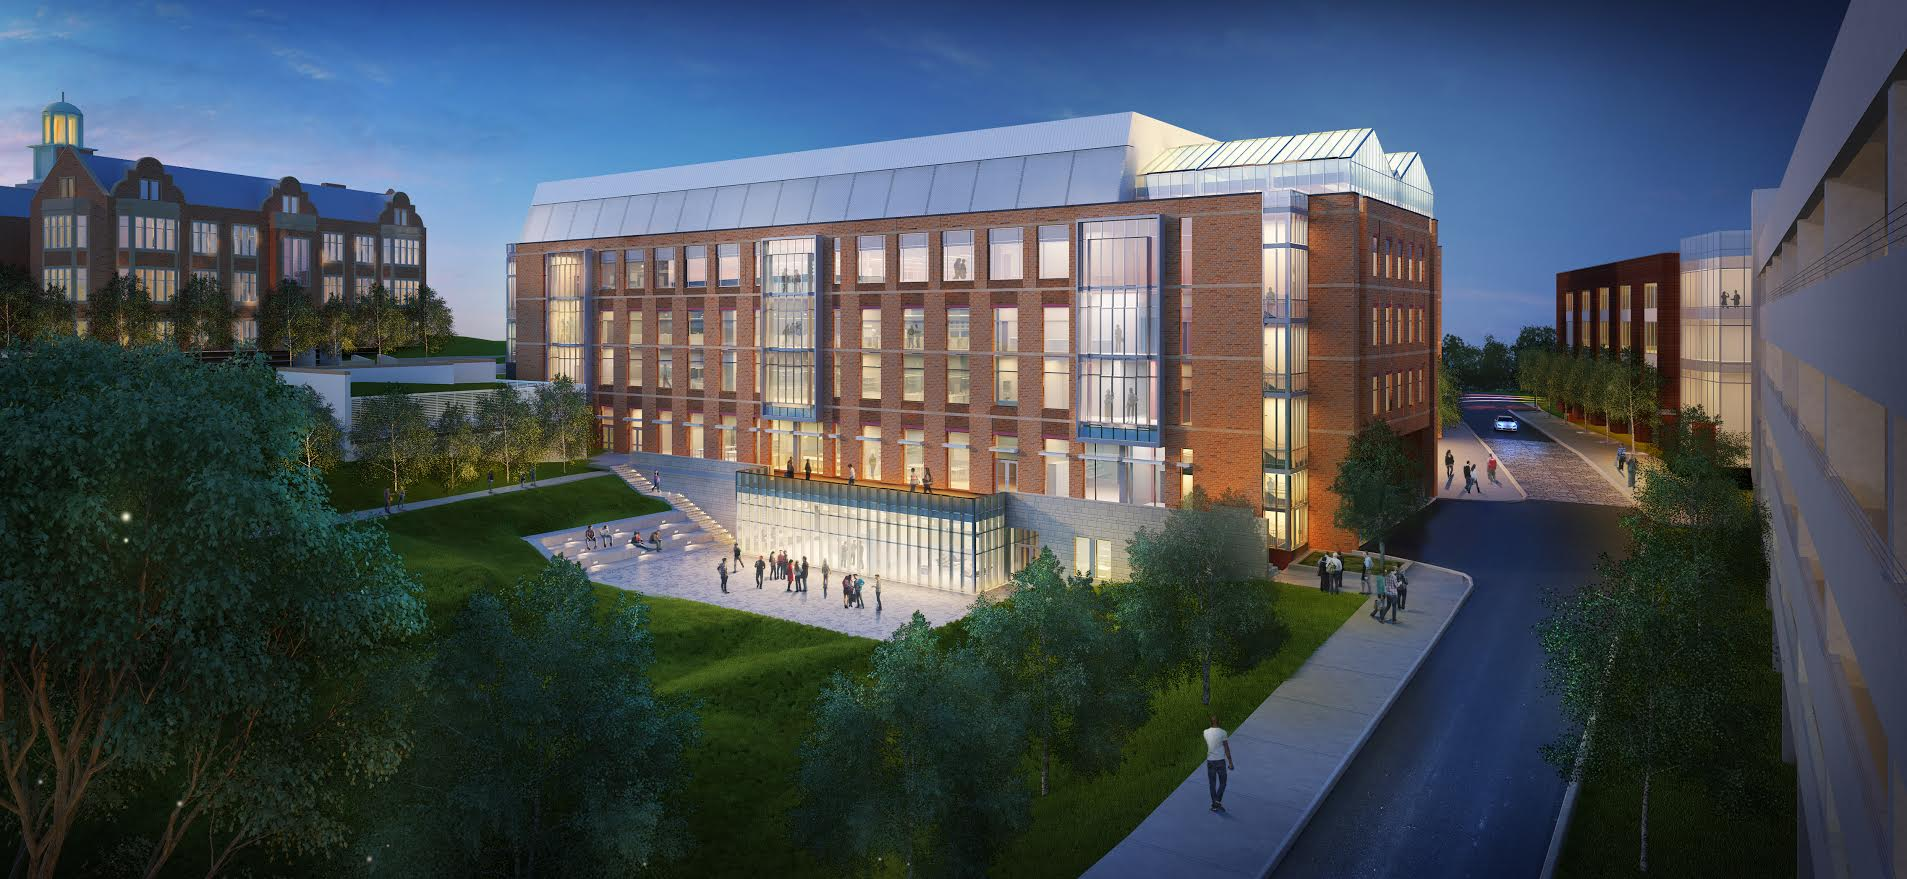 The proposed science building. Courtesy of Towson University.